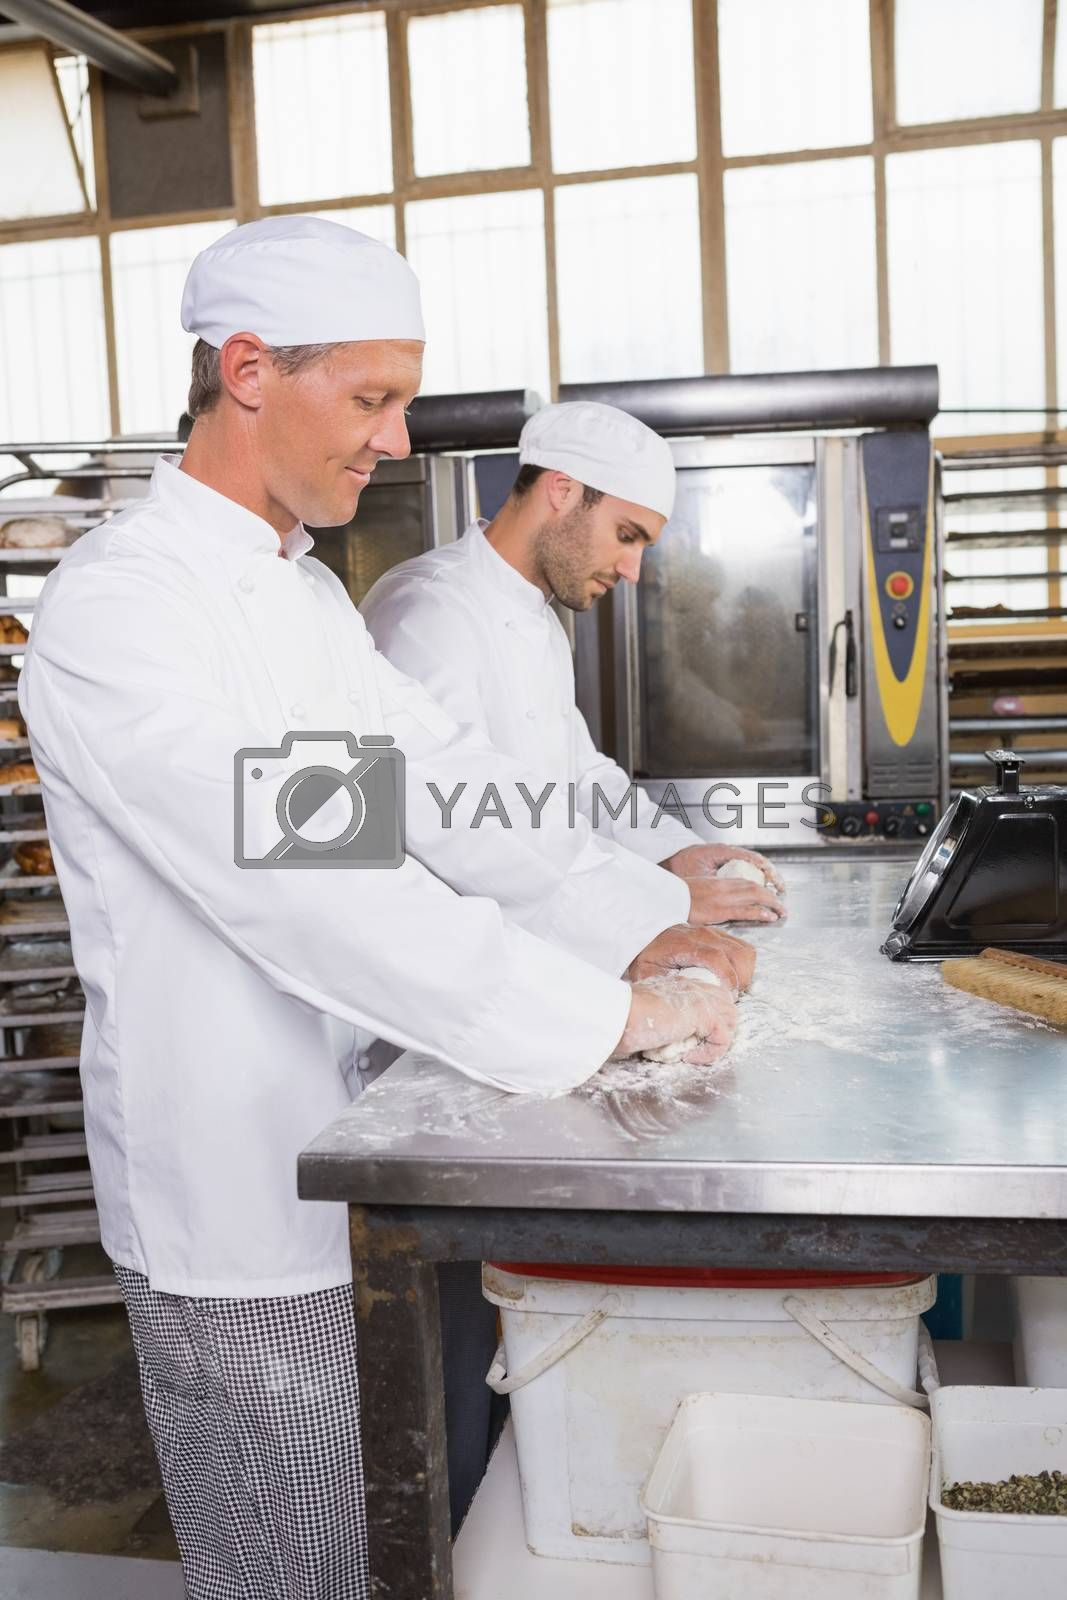 Focused bakers kneading dough at counter in the kitchen of the bakery